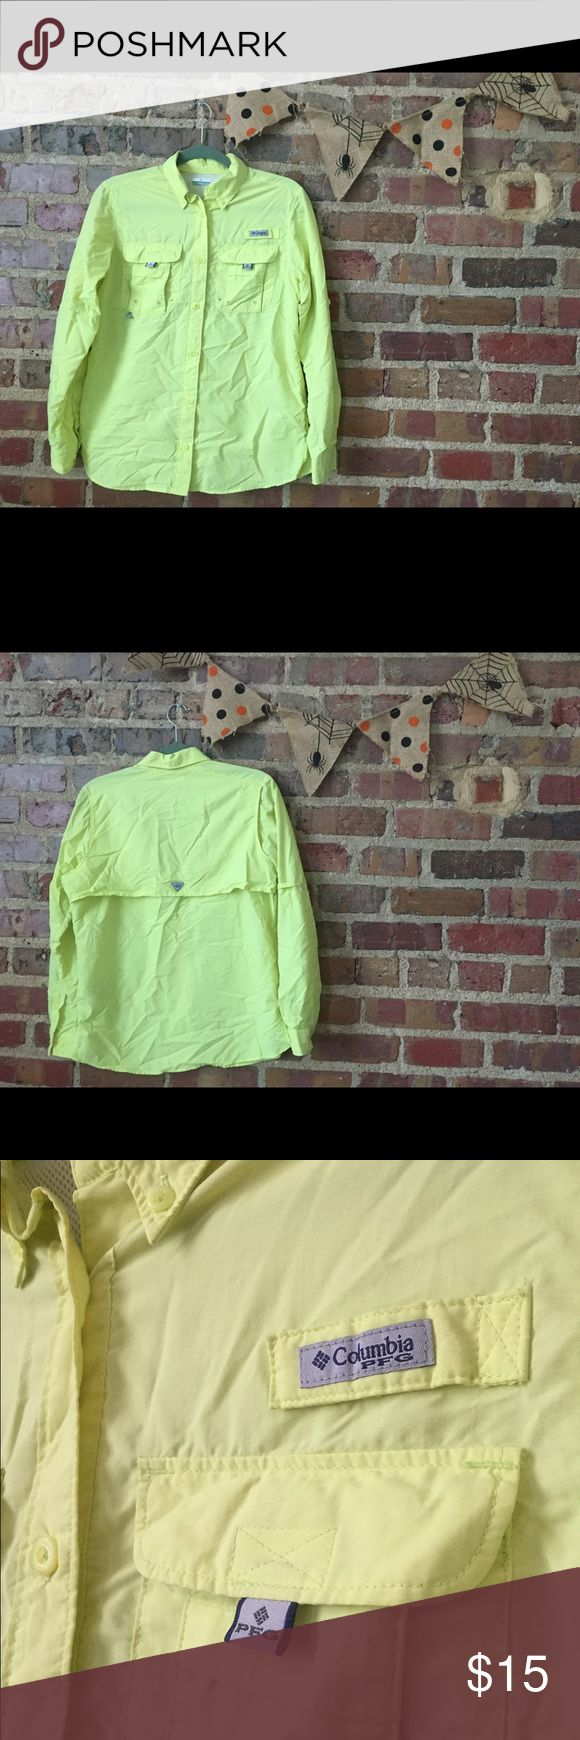 Women's Columbia PFG Shirt Never Worn! This brand new PFG shirt from Columbia is perfect for any outdoor girl. UV protective and comfy, breathable material with pockets galore! Color is Lime Green 🍍 Columbia Tops Button Down Shirts